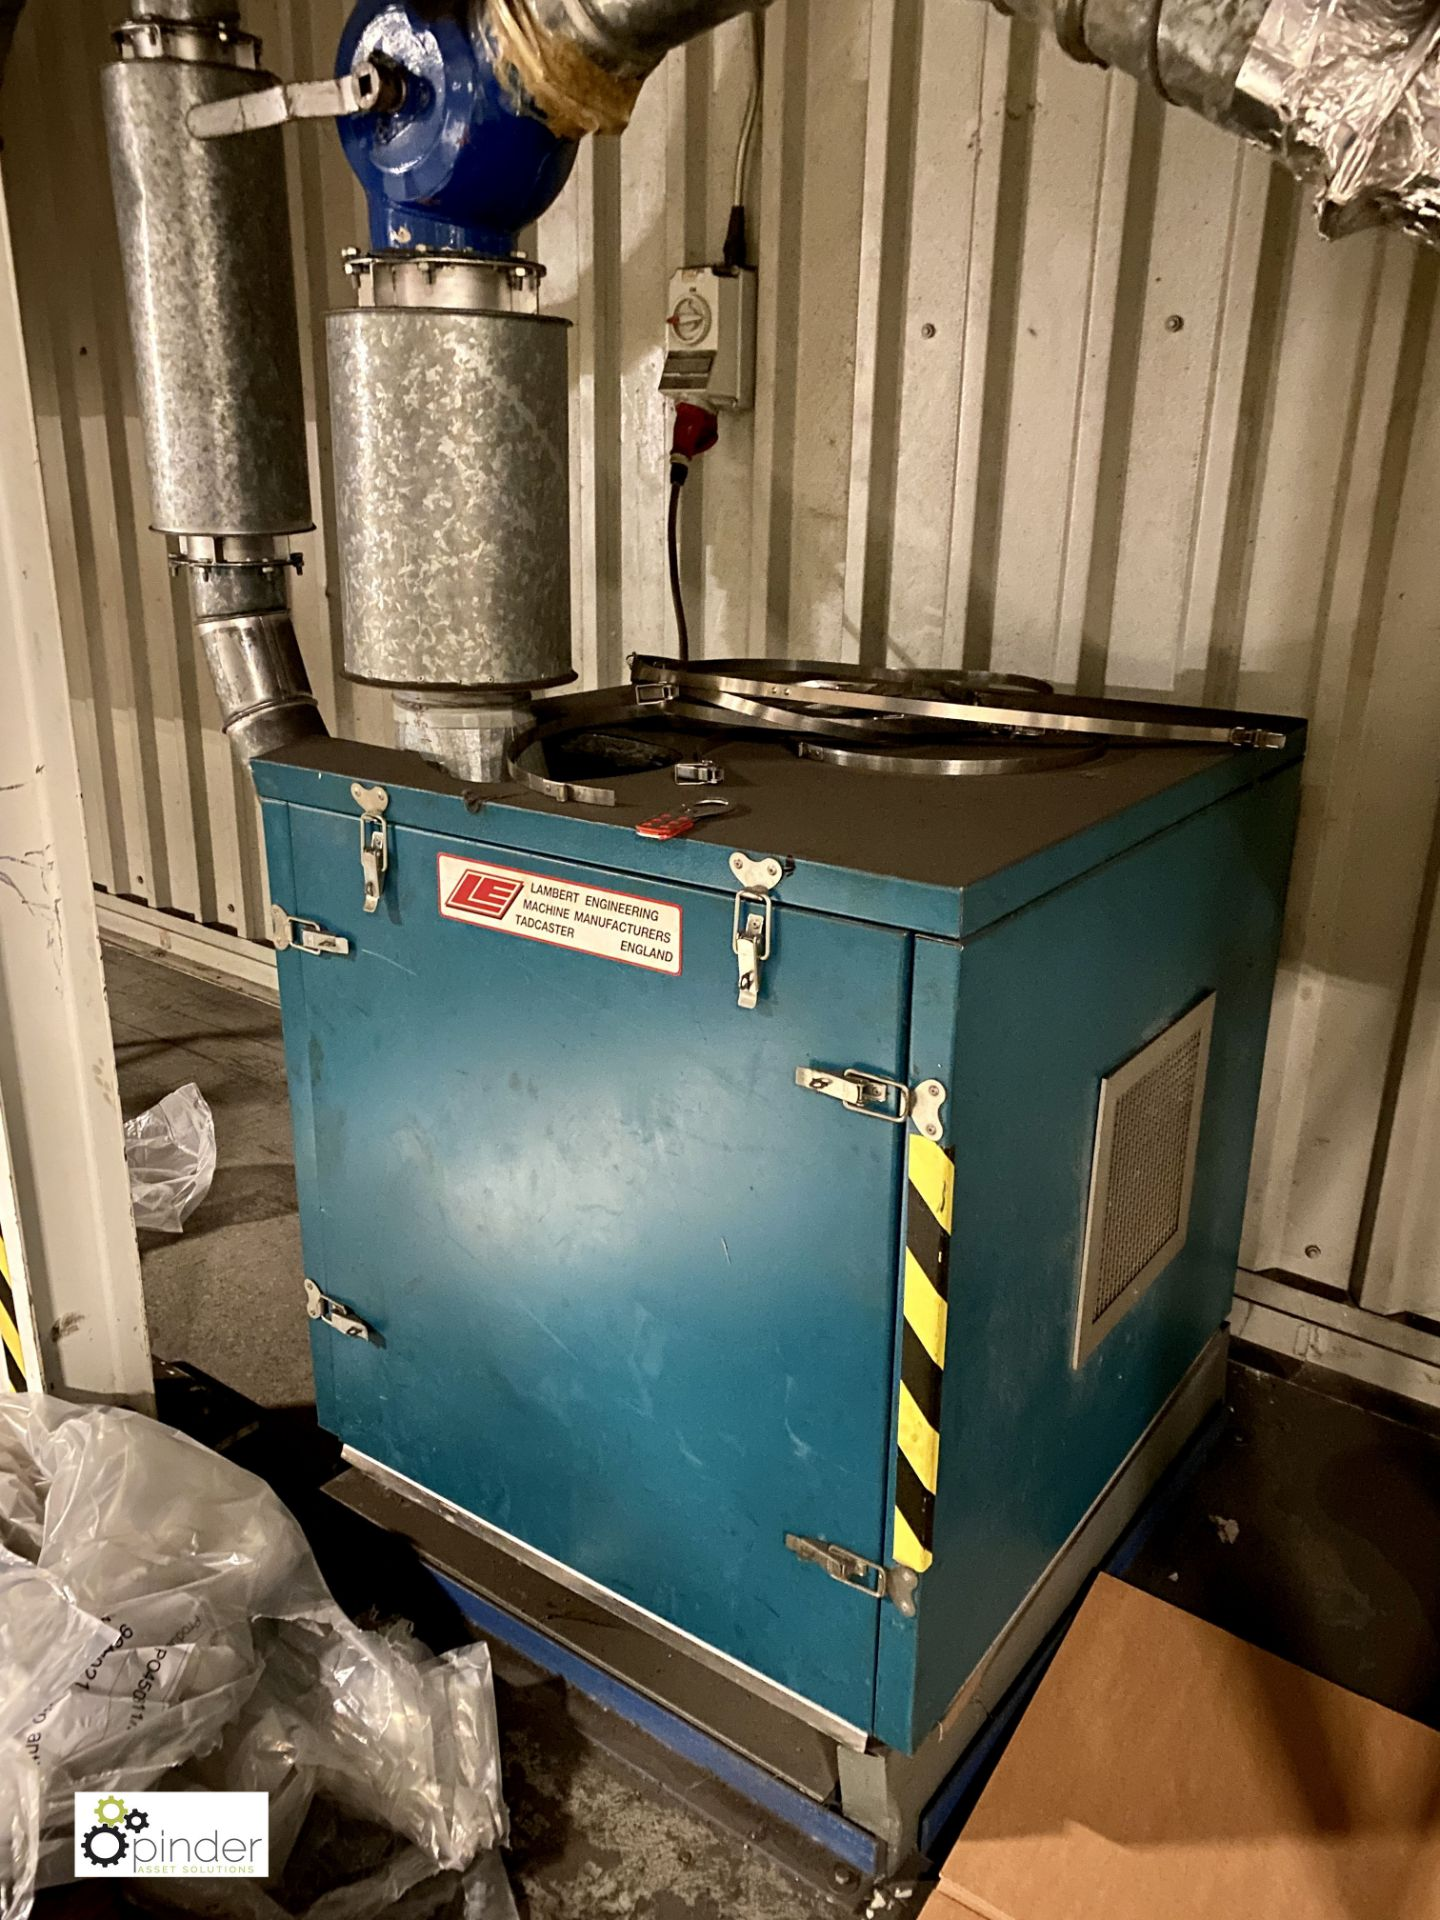 Lambert Engineering Dust Extraction System compris - Image 3 of 7